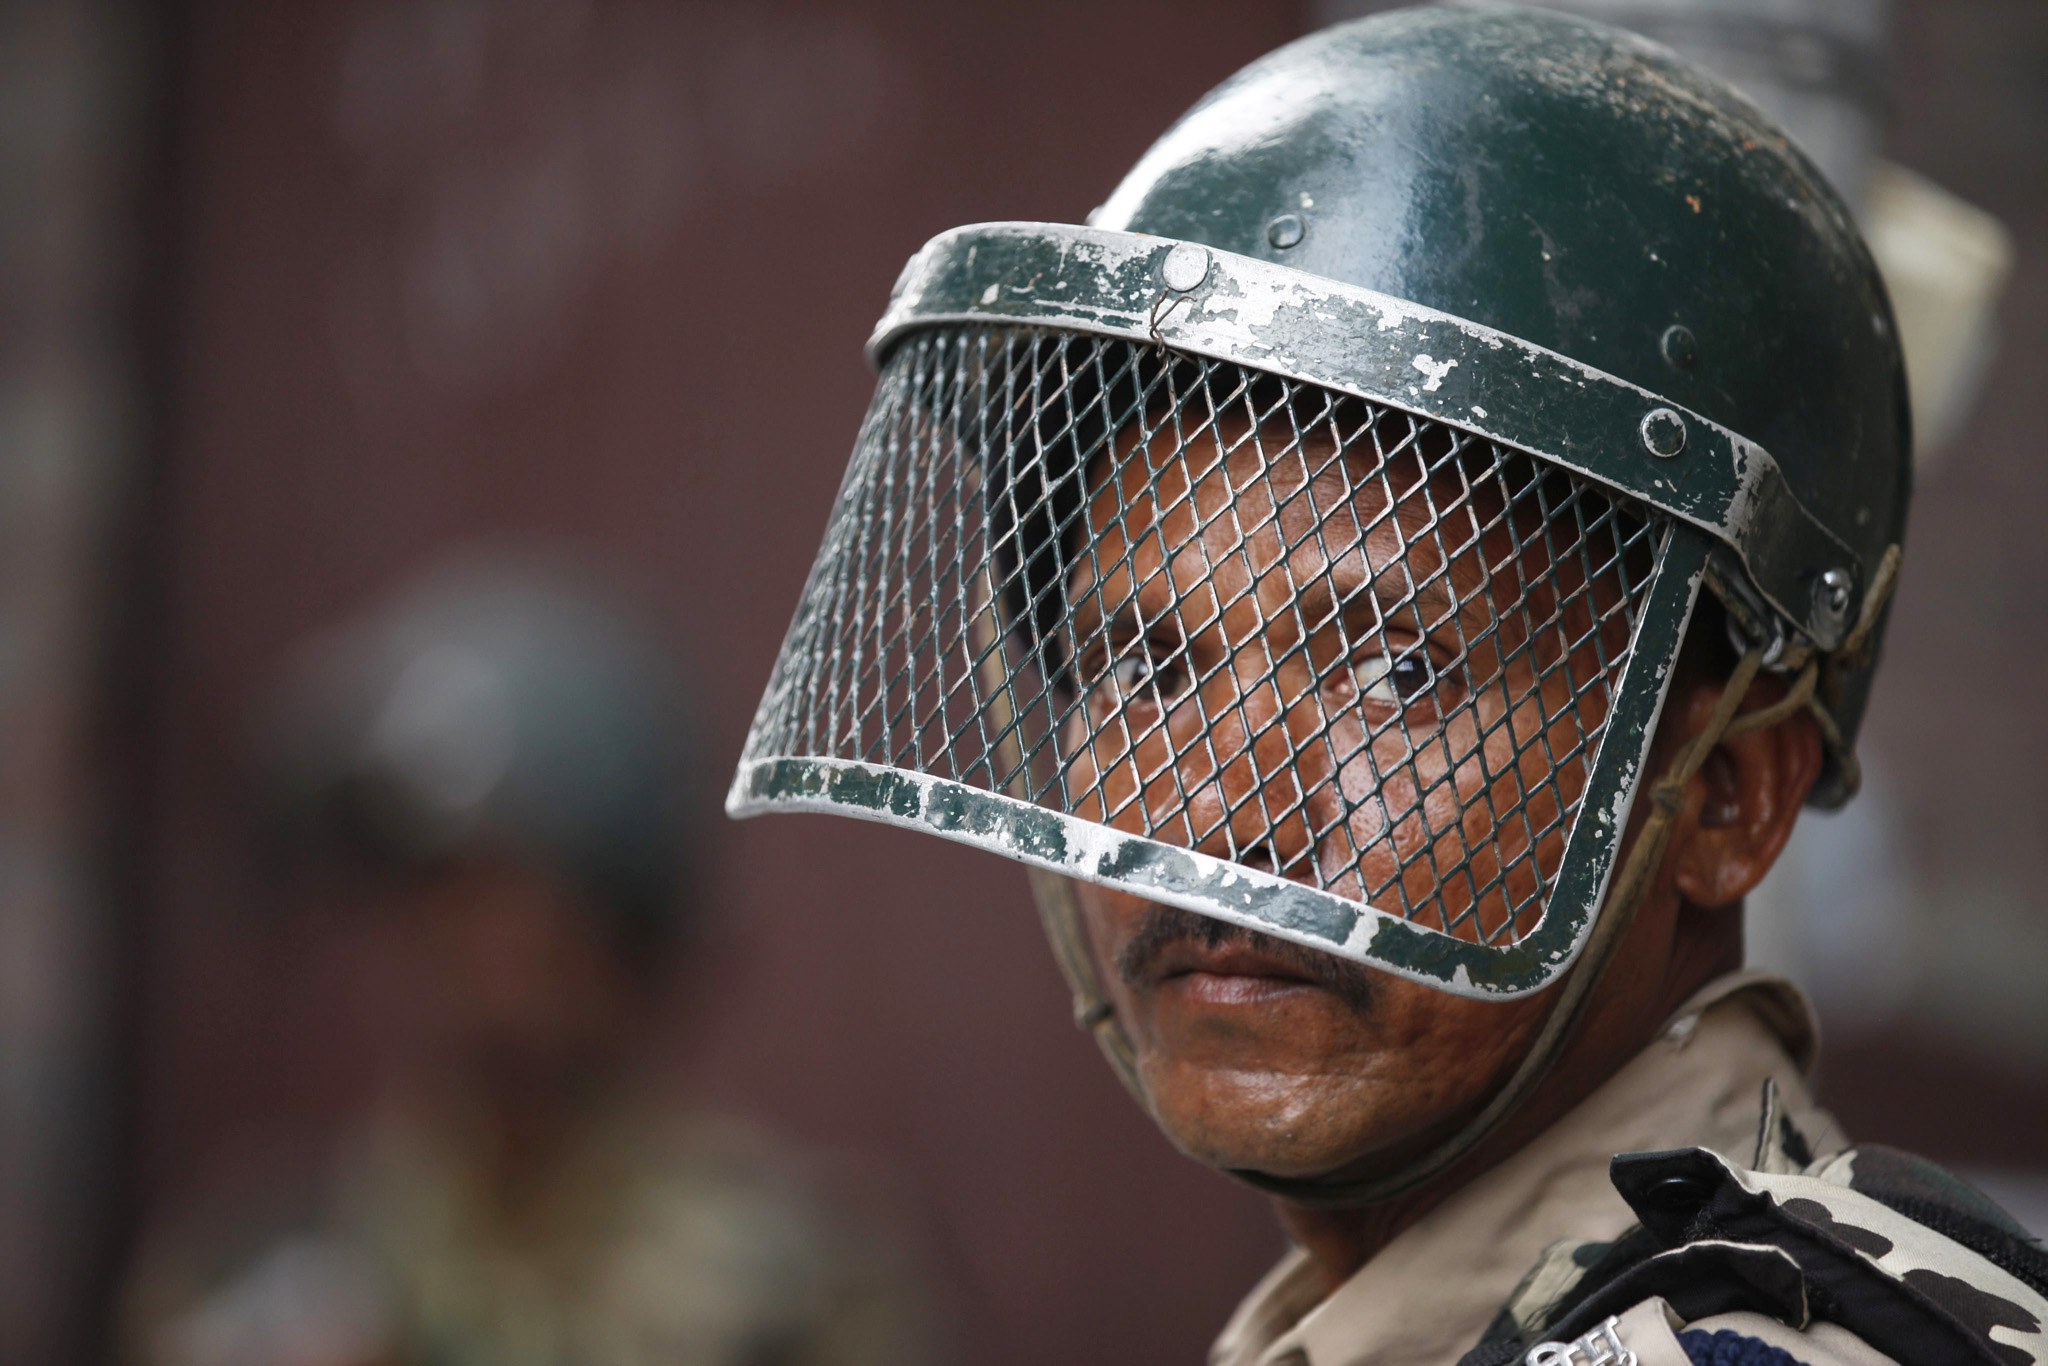 epa05422636 An Indian paramilitary officer stands guard during a curfew in Srinagar, the summer capital of Indian Kashmir, 13 July 2016. The authorities imposed curfew and severe restrictions in most parts of Kashmir valley for the fifth consecutive day to contain protests following the killing of militant commander Burhan Muzaffar Wani. According to local news reports the death toll reached 32 and over 1,300 persons were injured across Indian Kashmir during clashes over the past six days.  EPA/FAROOQ KHAN